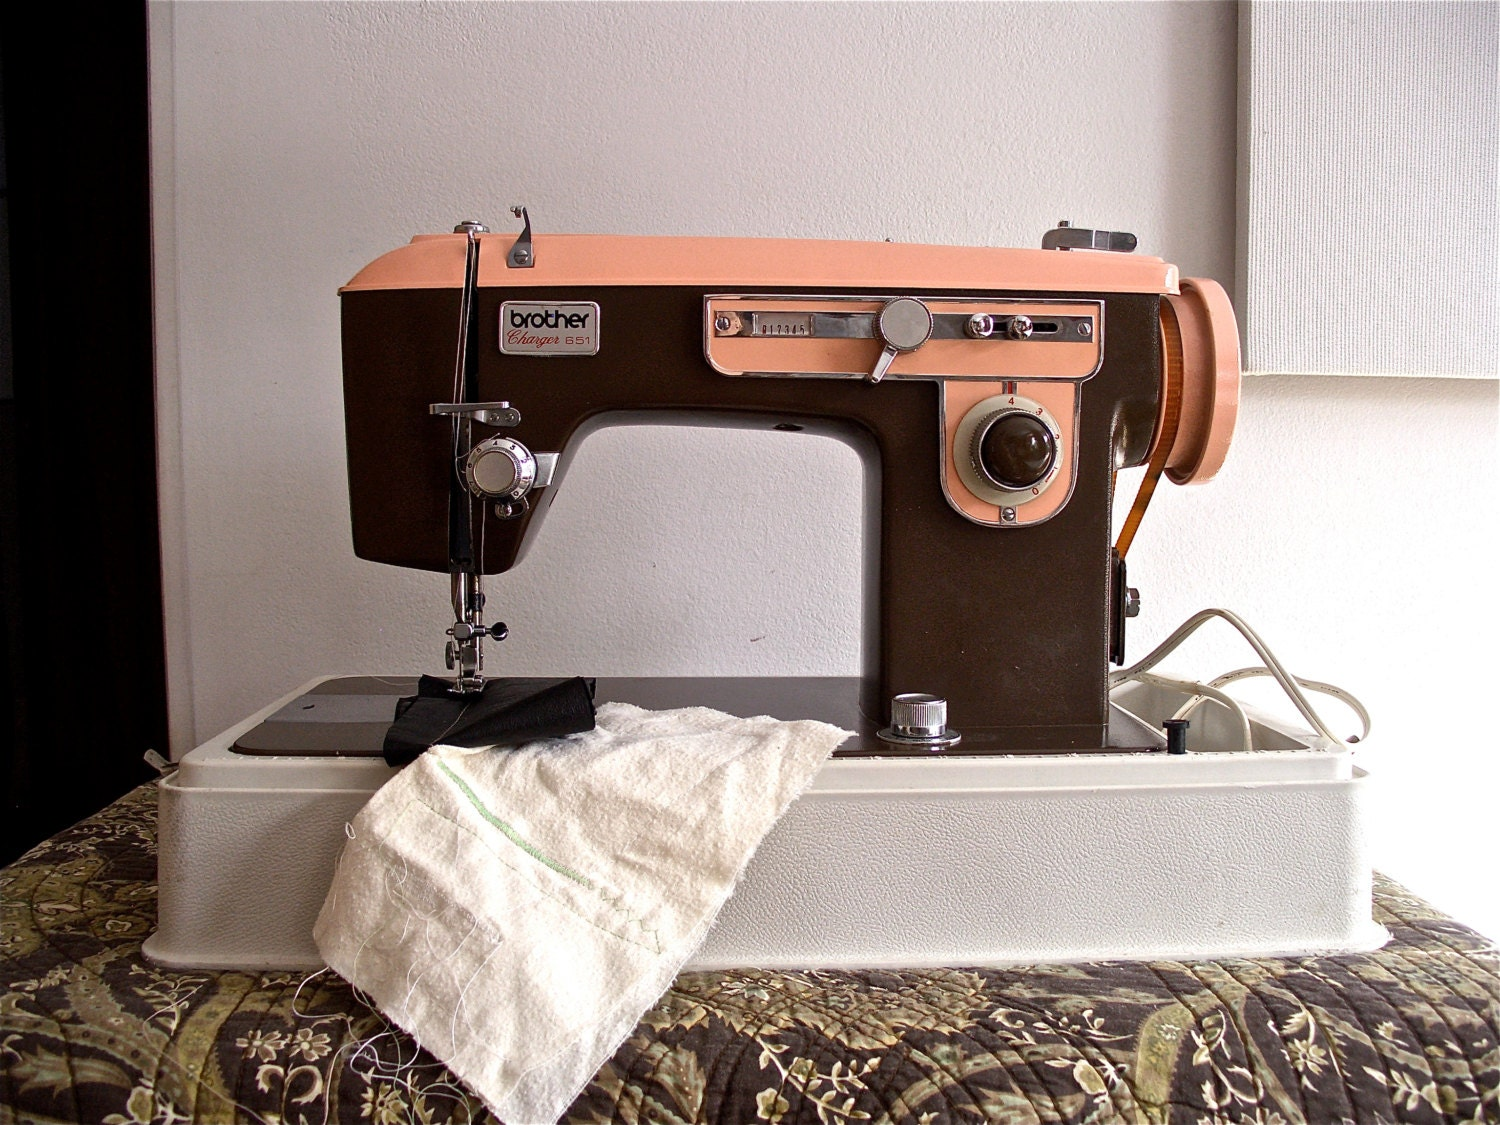 Brother Charger 651 Vintage Sewing Machine